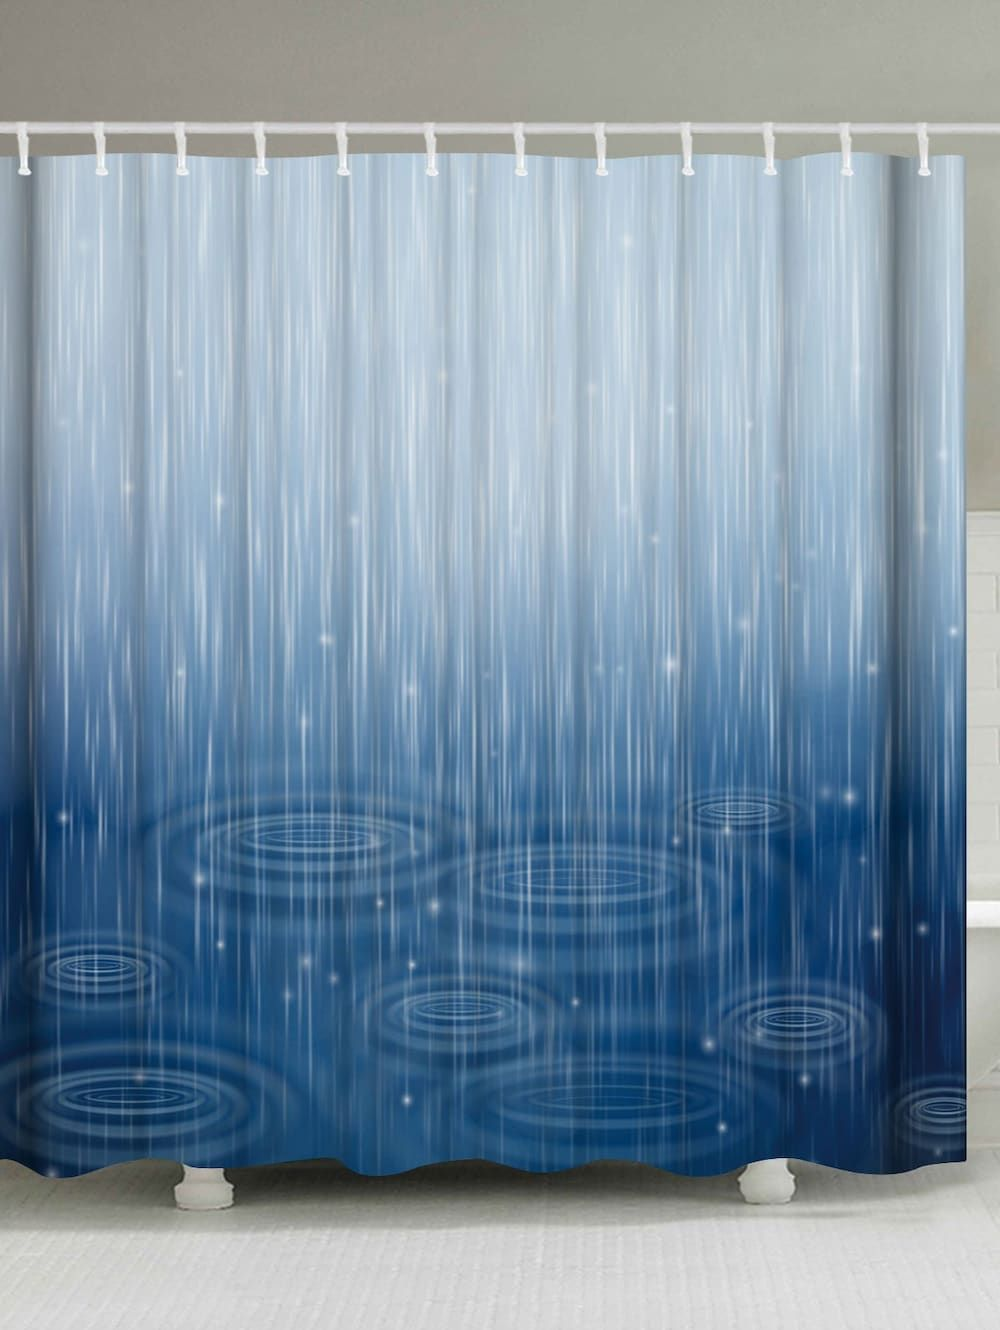 Water Ripple Fabric Shower Curtain For Bathroom